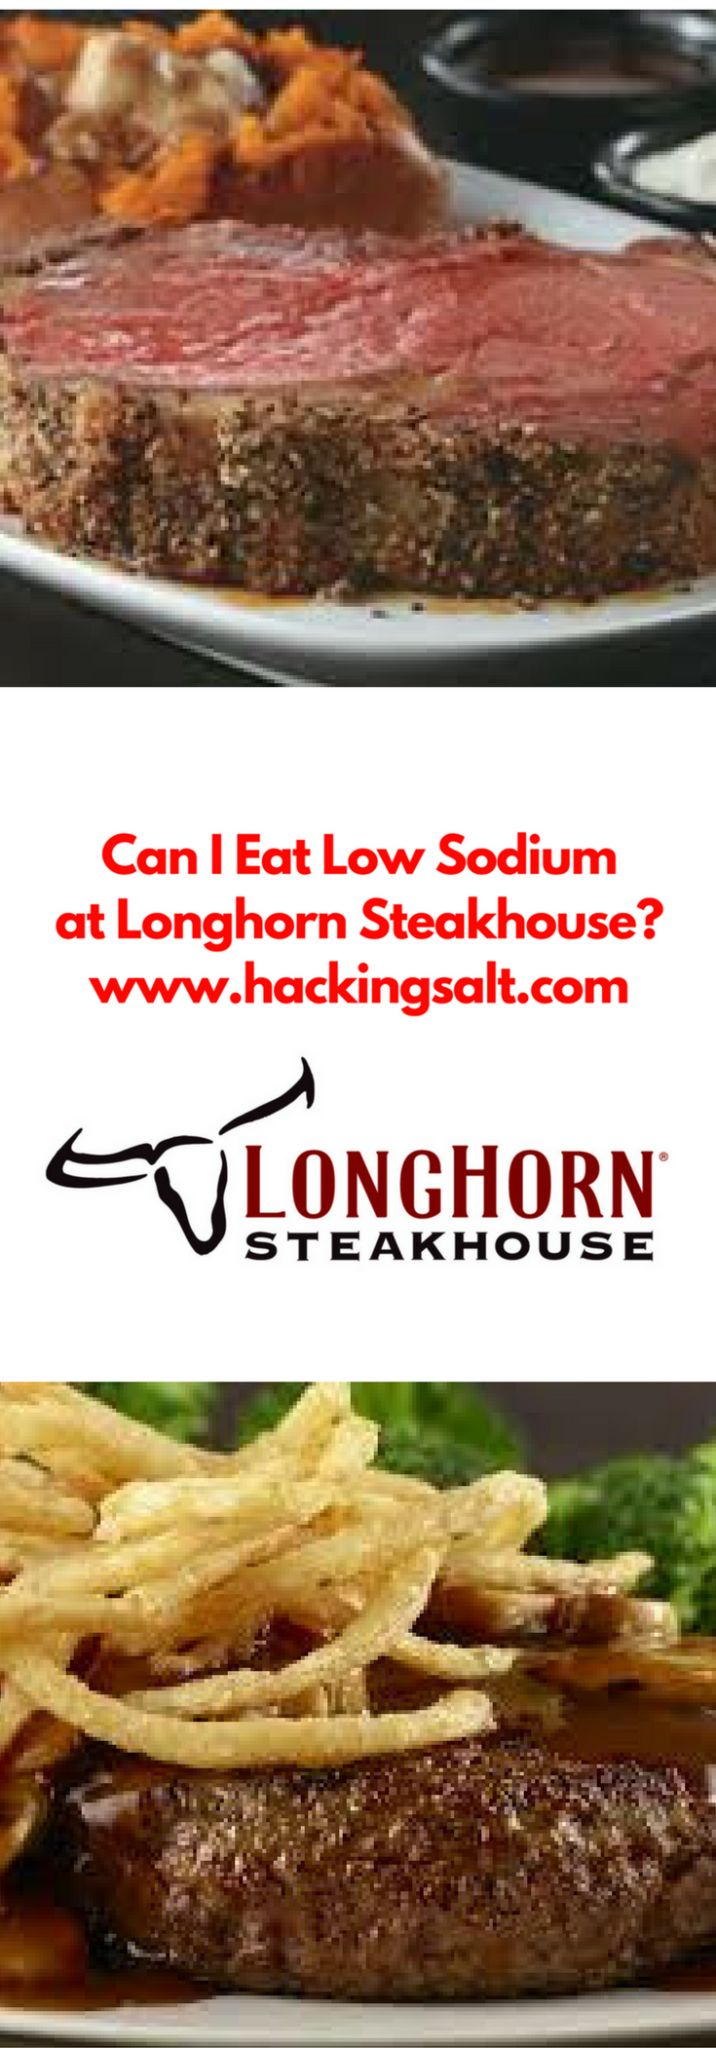 Can I Eat Low Sodium at Longhorn Steakhouse Diners on a low sodium journey usually have at least one go-to menu item to look for when we dine out. We  look for a sirloin or filet and a potato. Many restaurants, especially those that have a scratch kitchen will hopefully order in fresh beef. My...Read More »